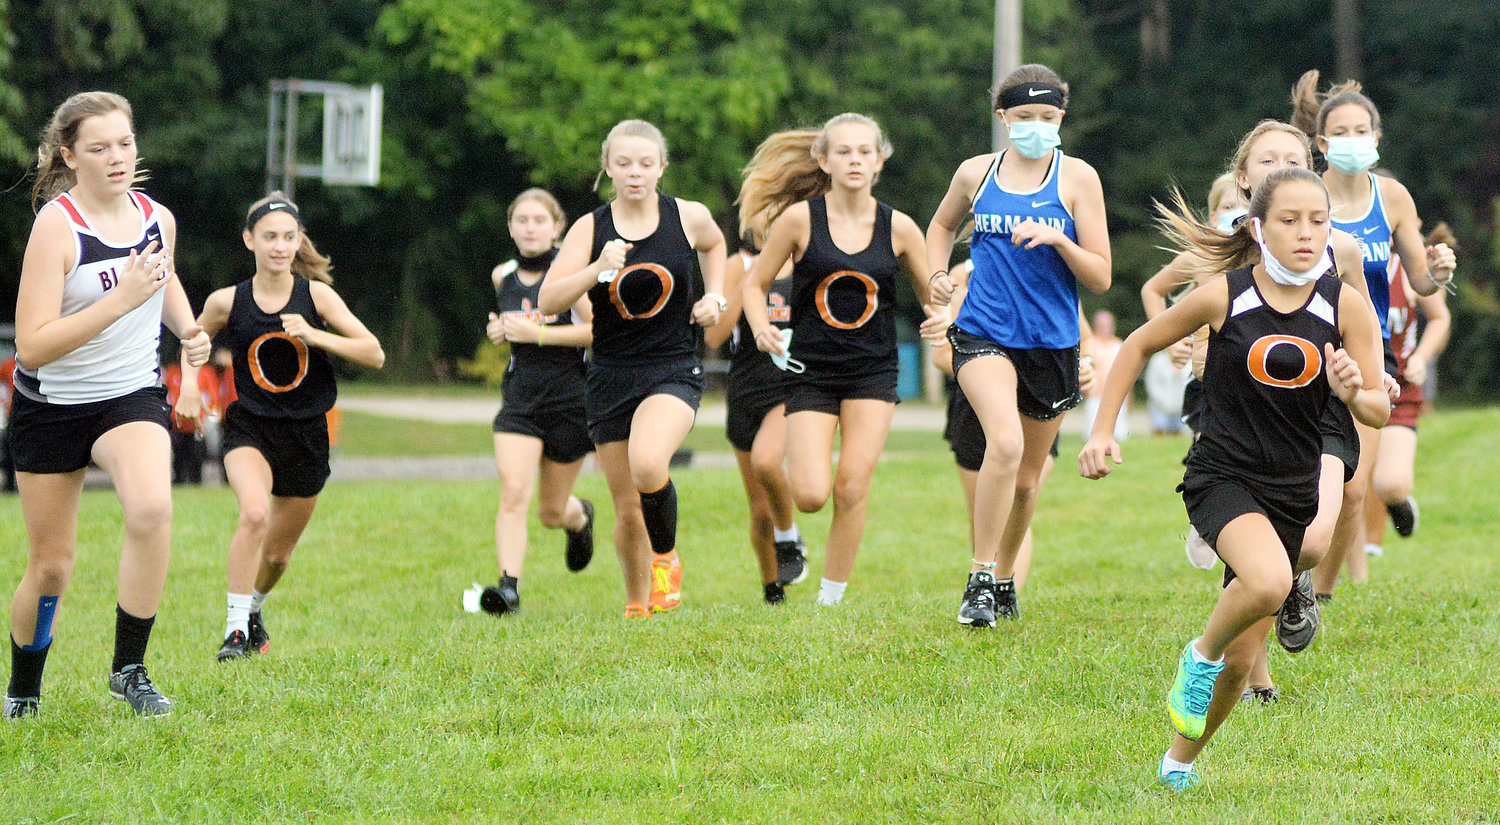 Ilene Limberg (far right) got a good start to move towards the front of the pack Saturday morning during the New Haven Cross Country Invitational at New Haven City Park. Limberg went on to pass Union's Viola Johanson halfway through the race going on to win it.